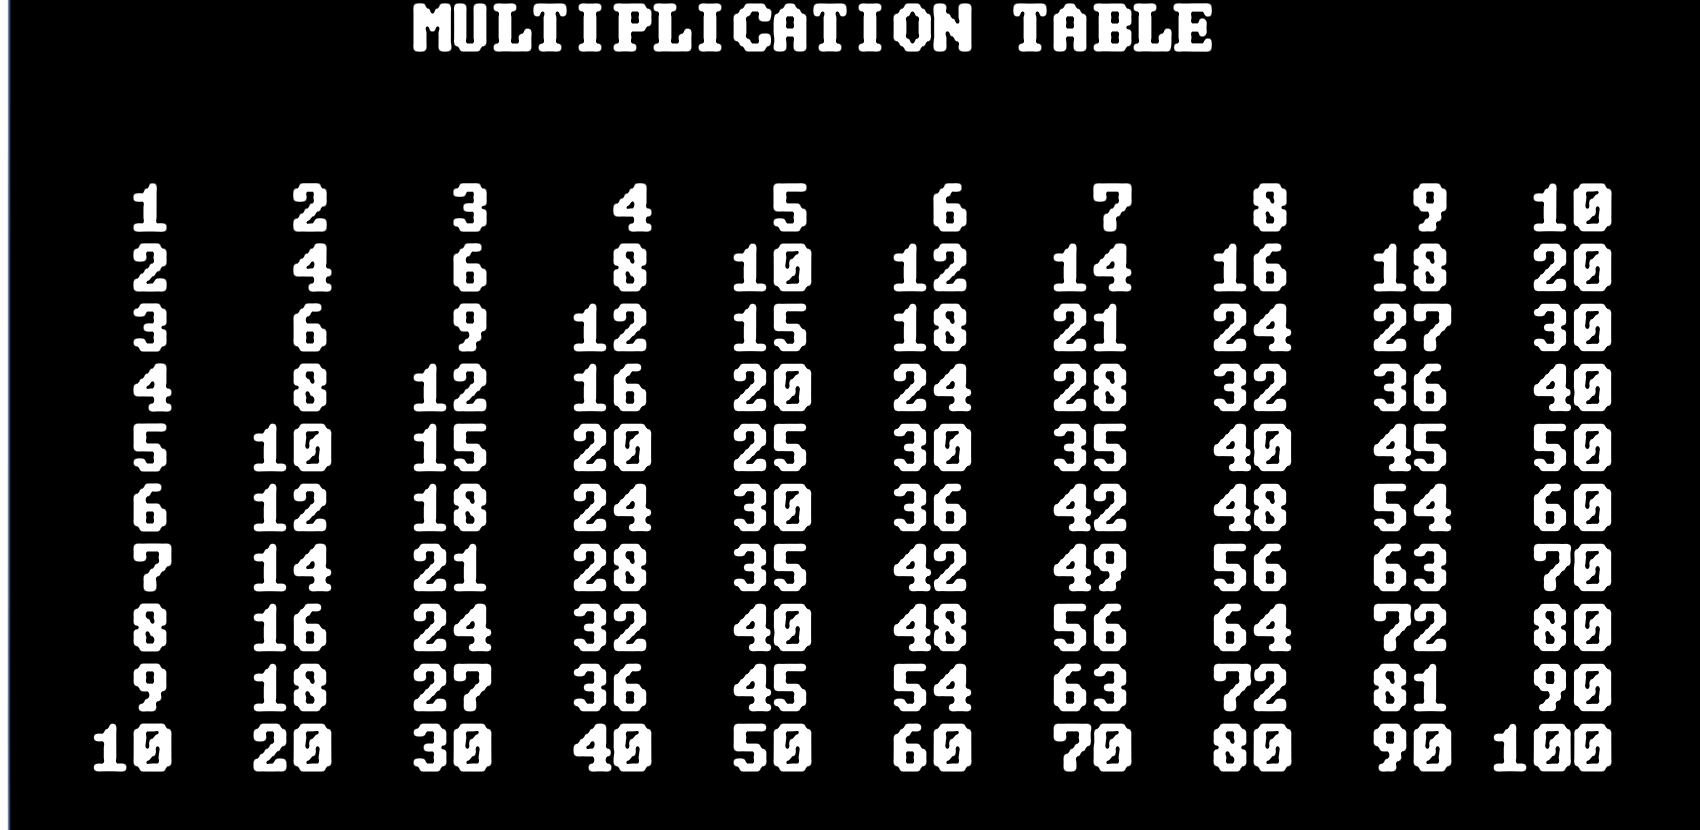 multiplication table version 2 0 using two dimensional array